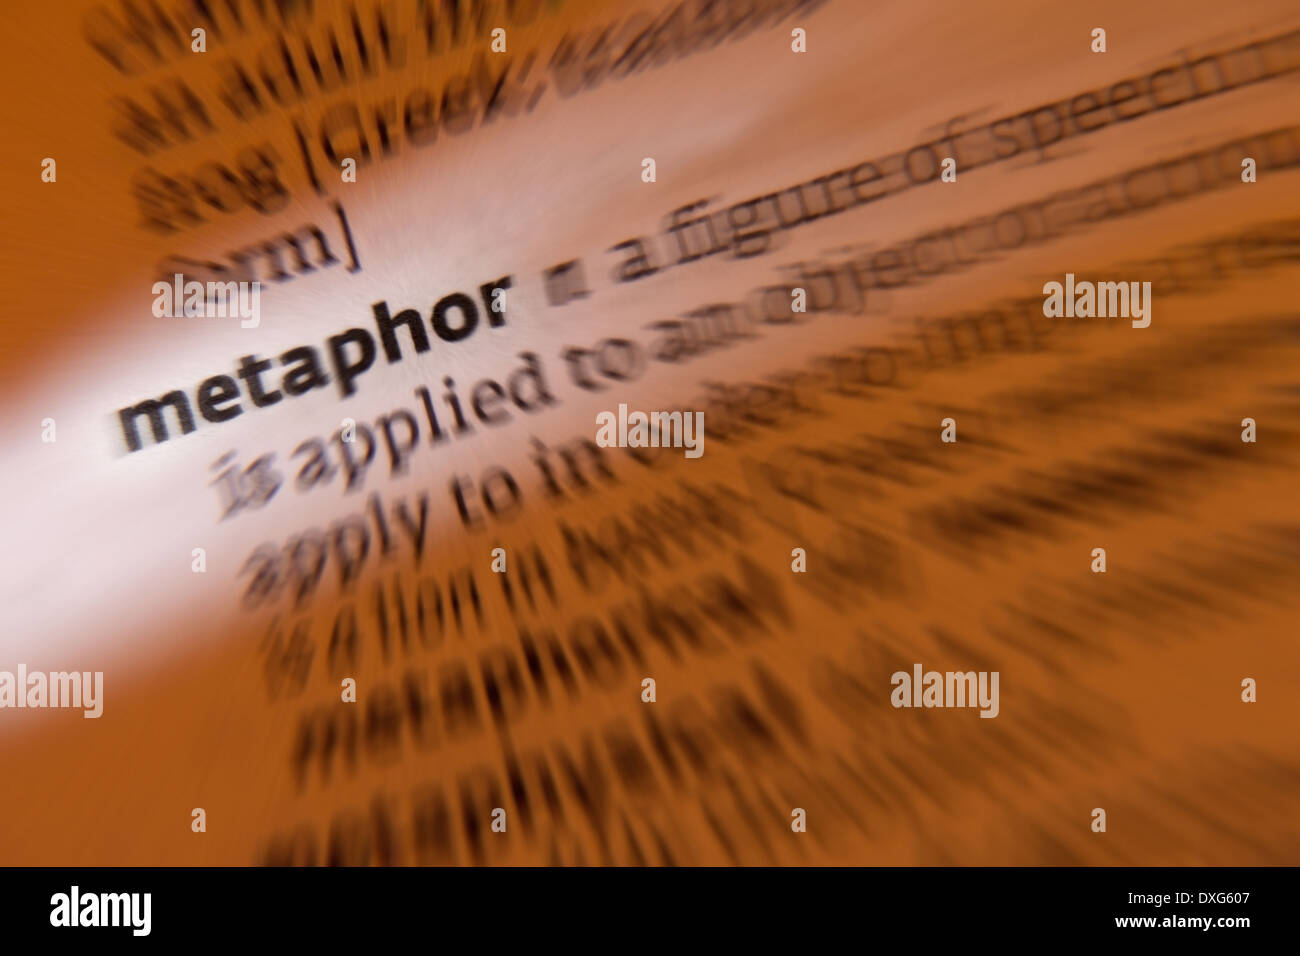 Metaphor - Stock Image